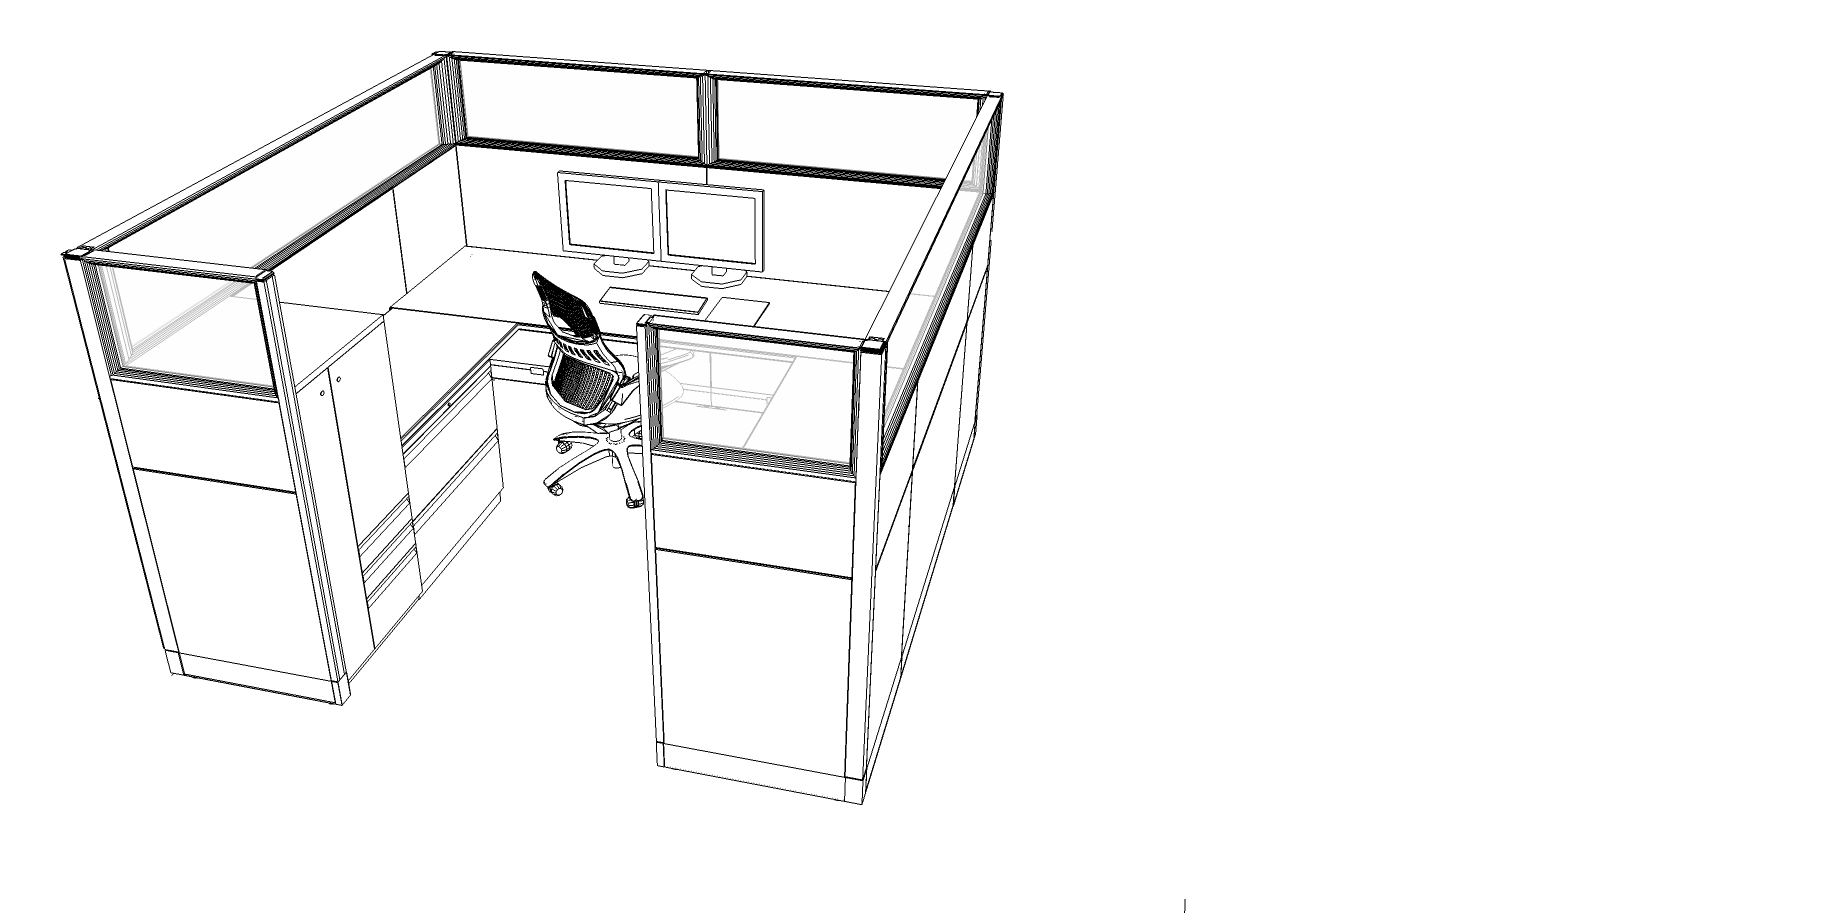 Standard cubicle layout throughout the floor